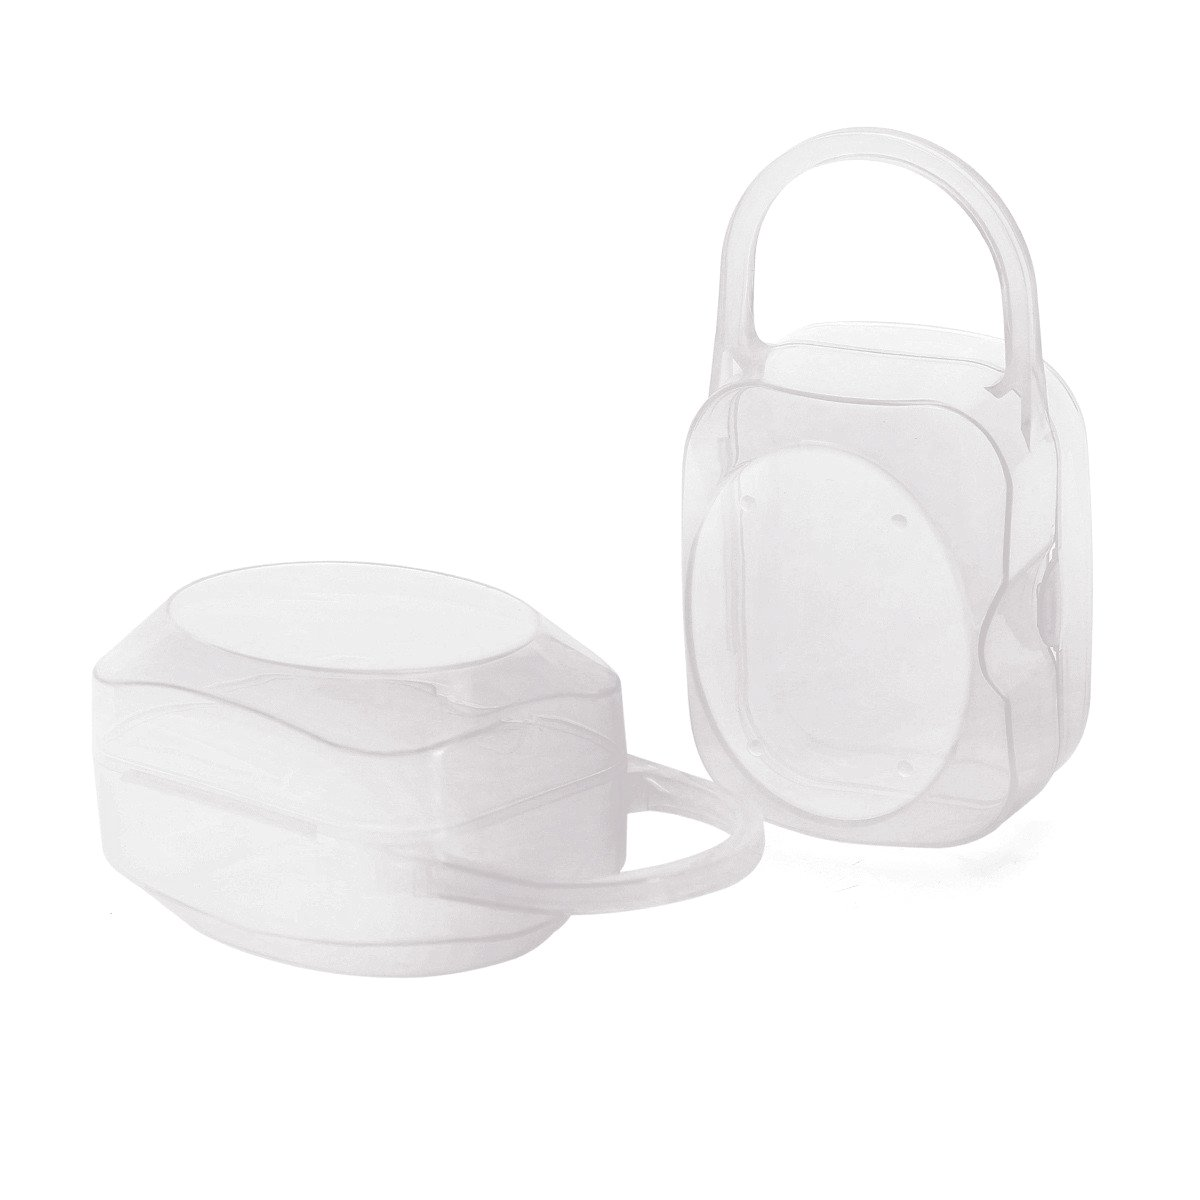 Pacifier Box Nipple Shield Case Pacifier Holder -2 PACK Laneyli